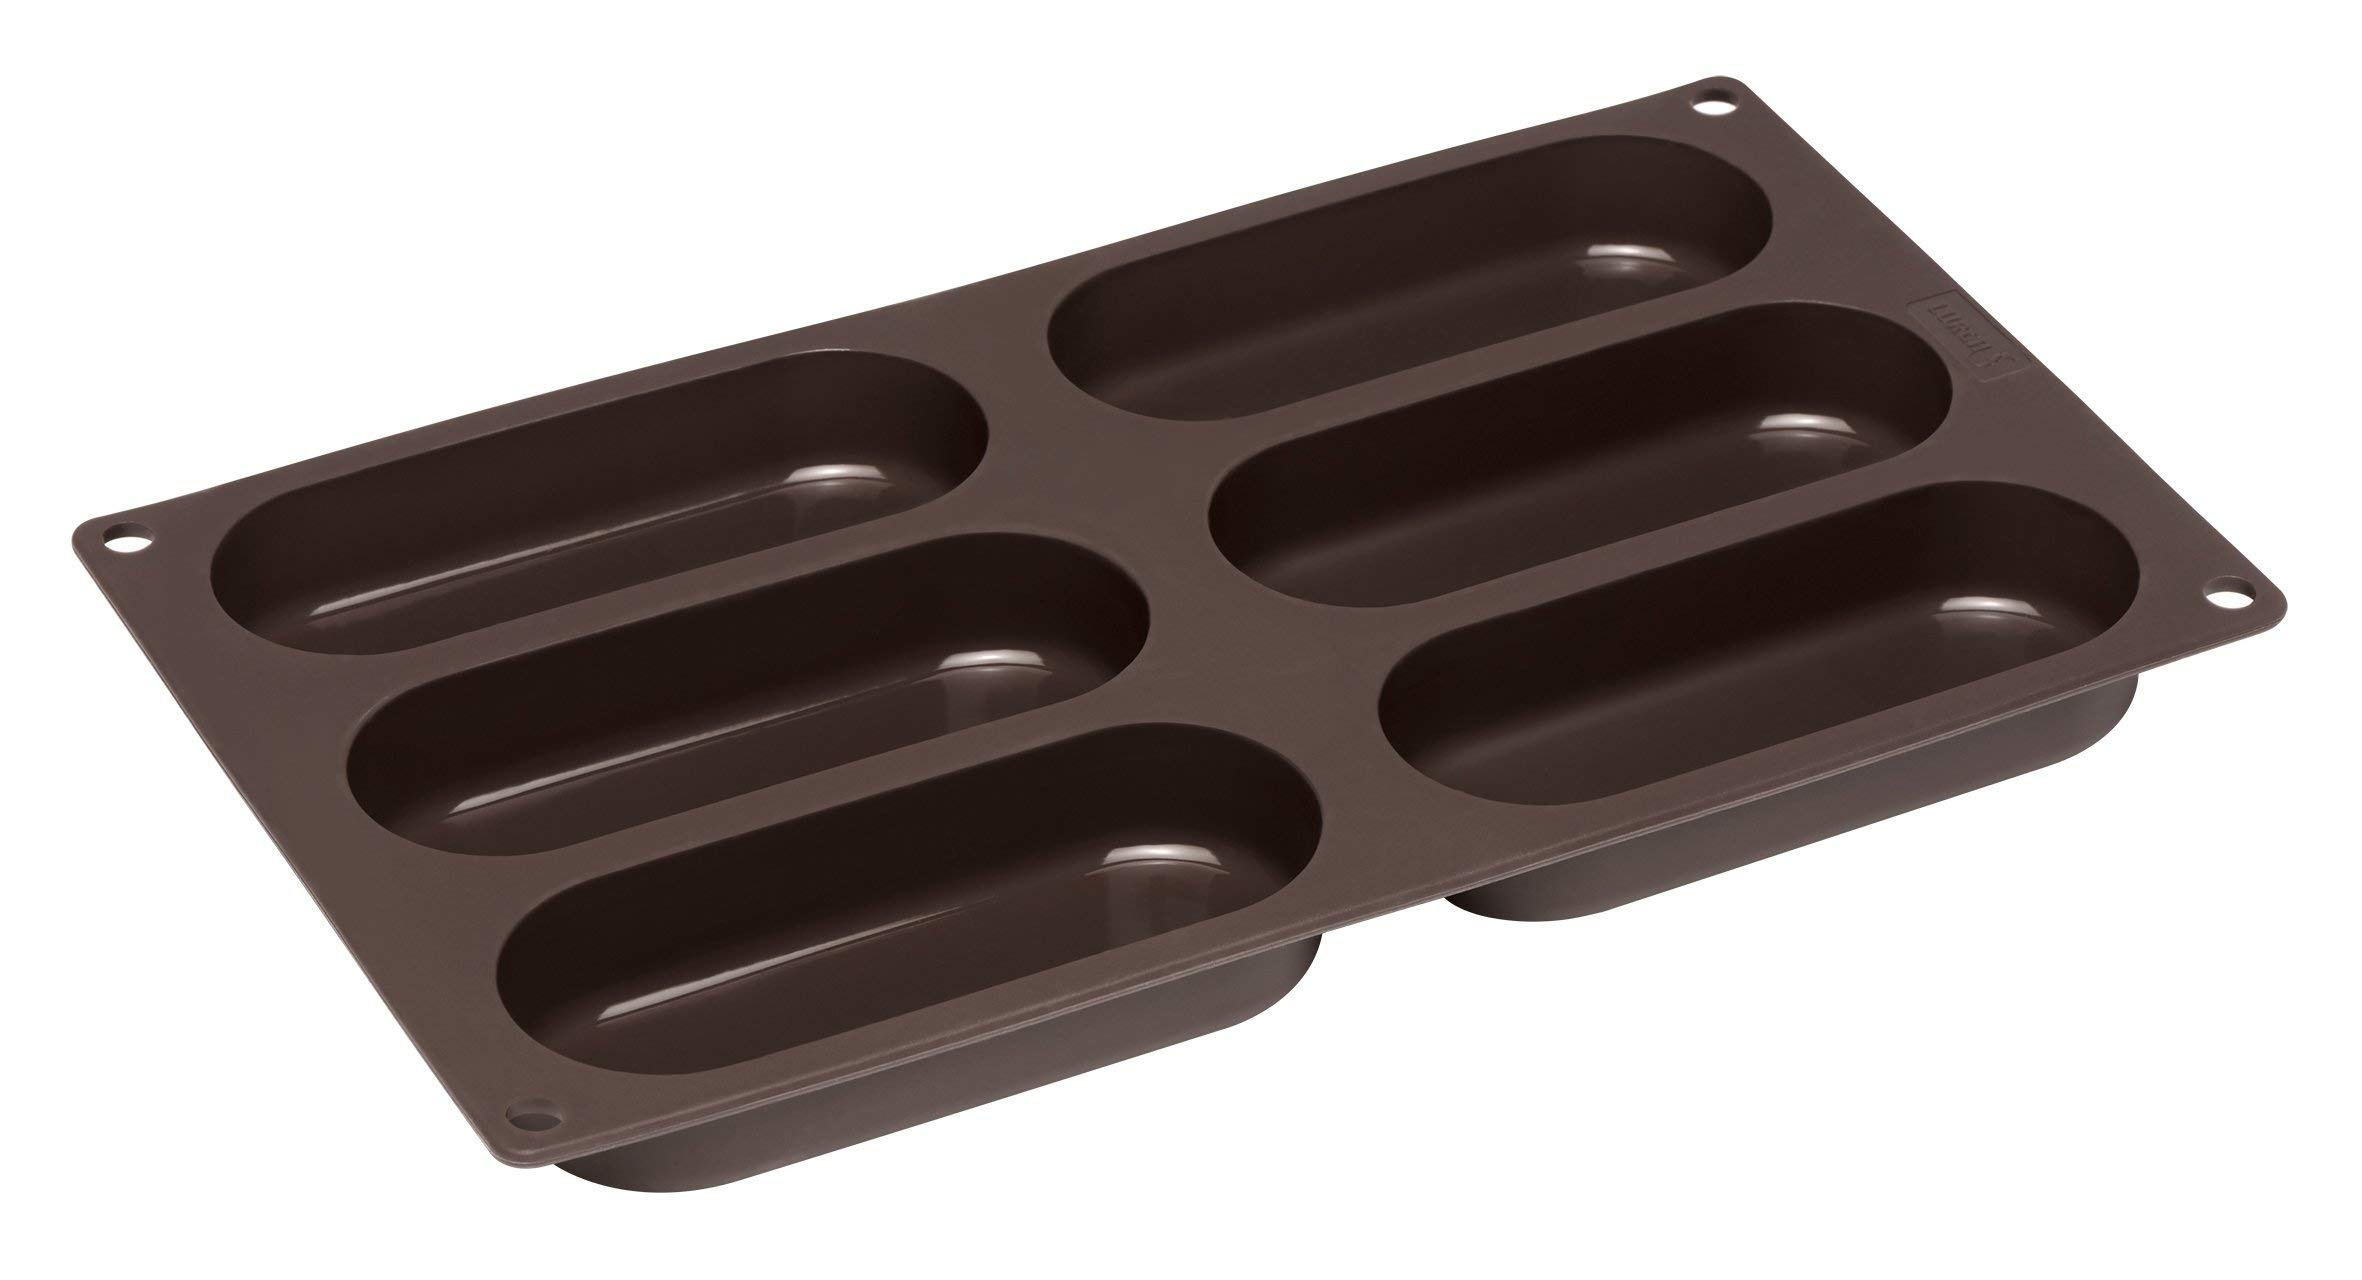 Lurch Germany Flexiform Hotdog Buns 11.8x6.9 inches 6 cavity brown